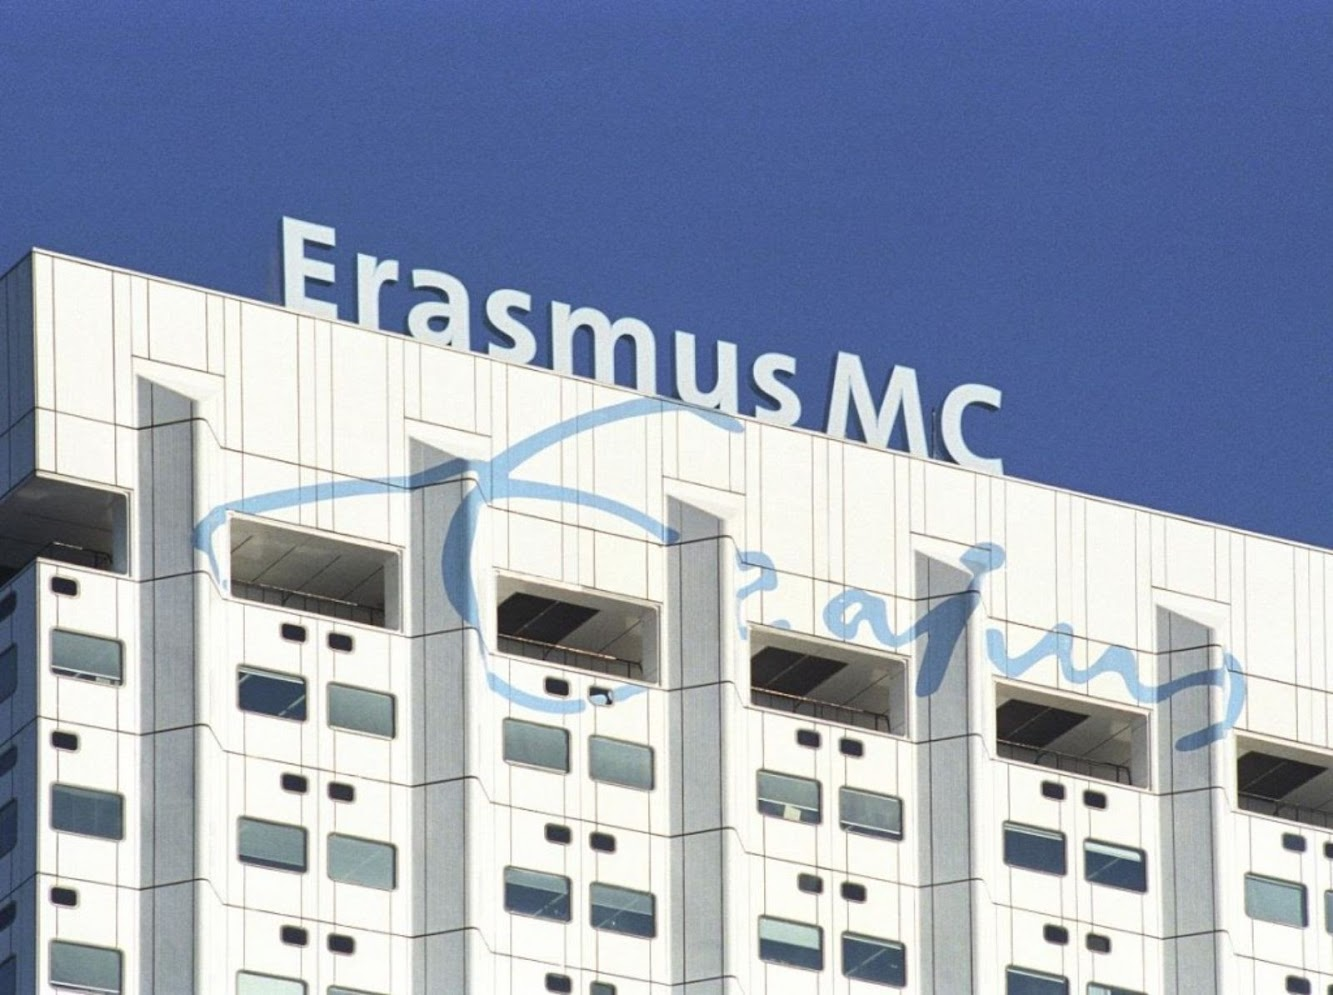 Education Center Erasmus Mc by Claus en Kaan